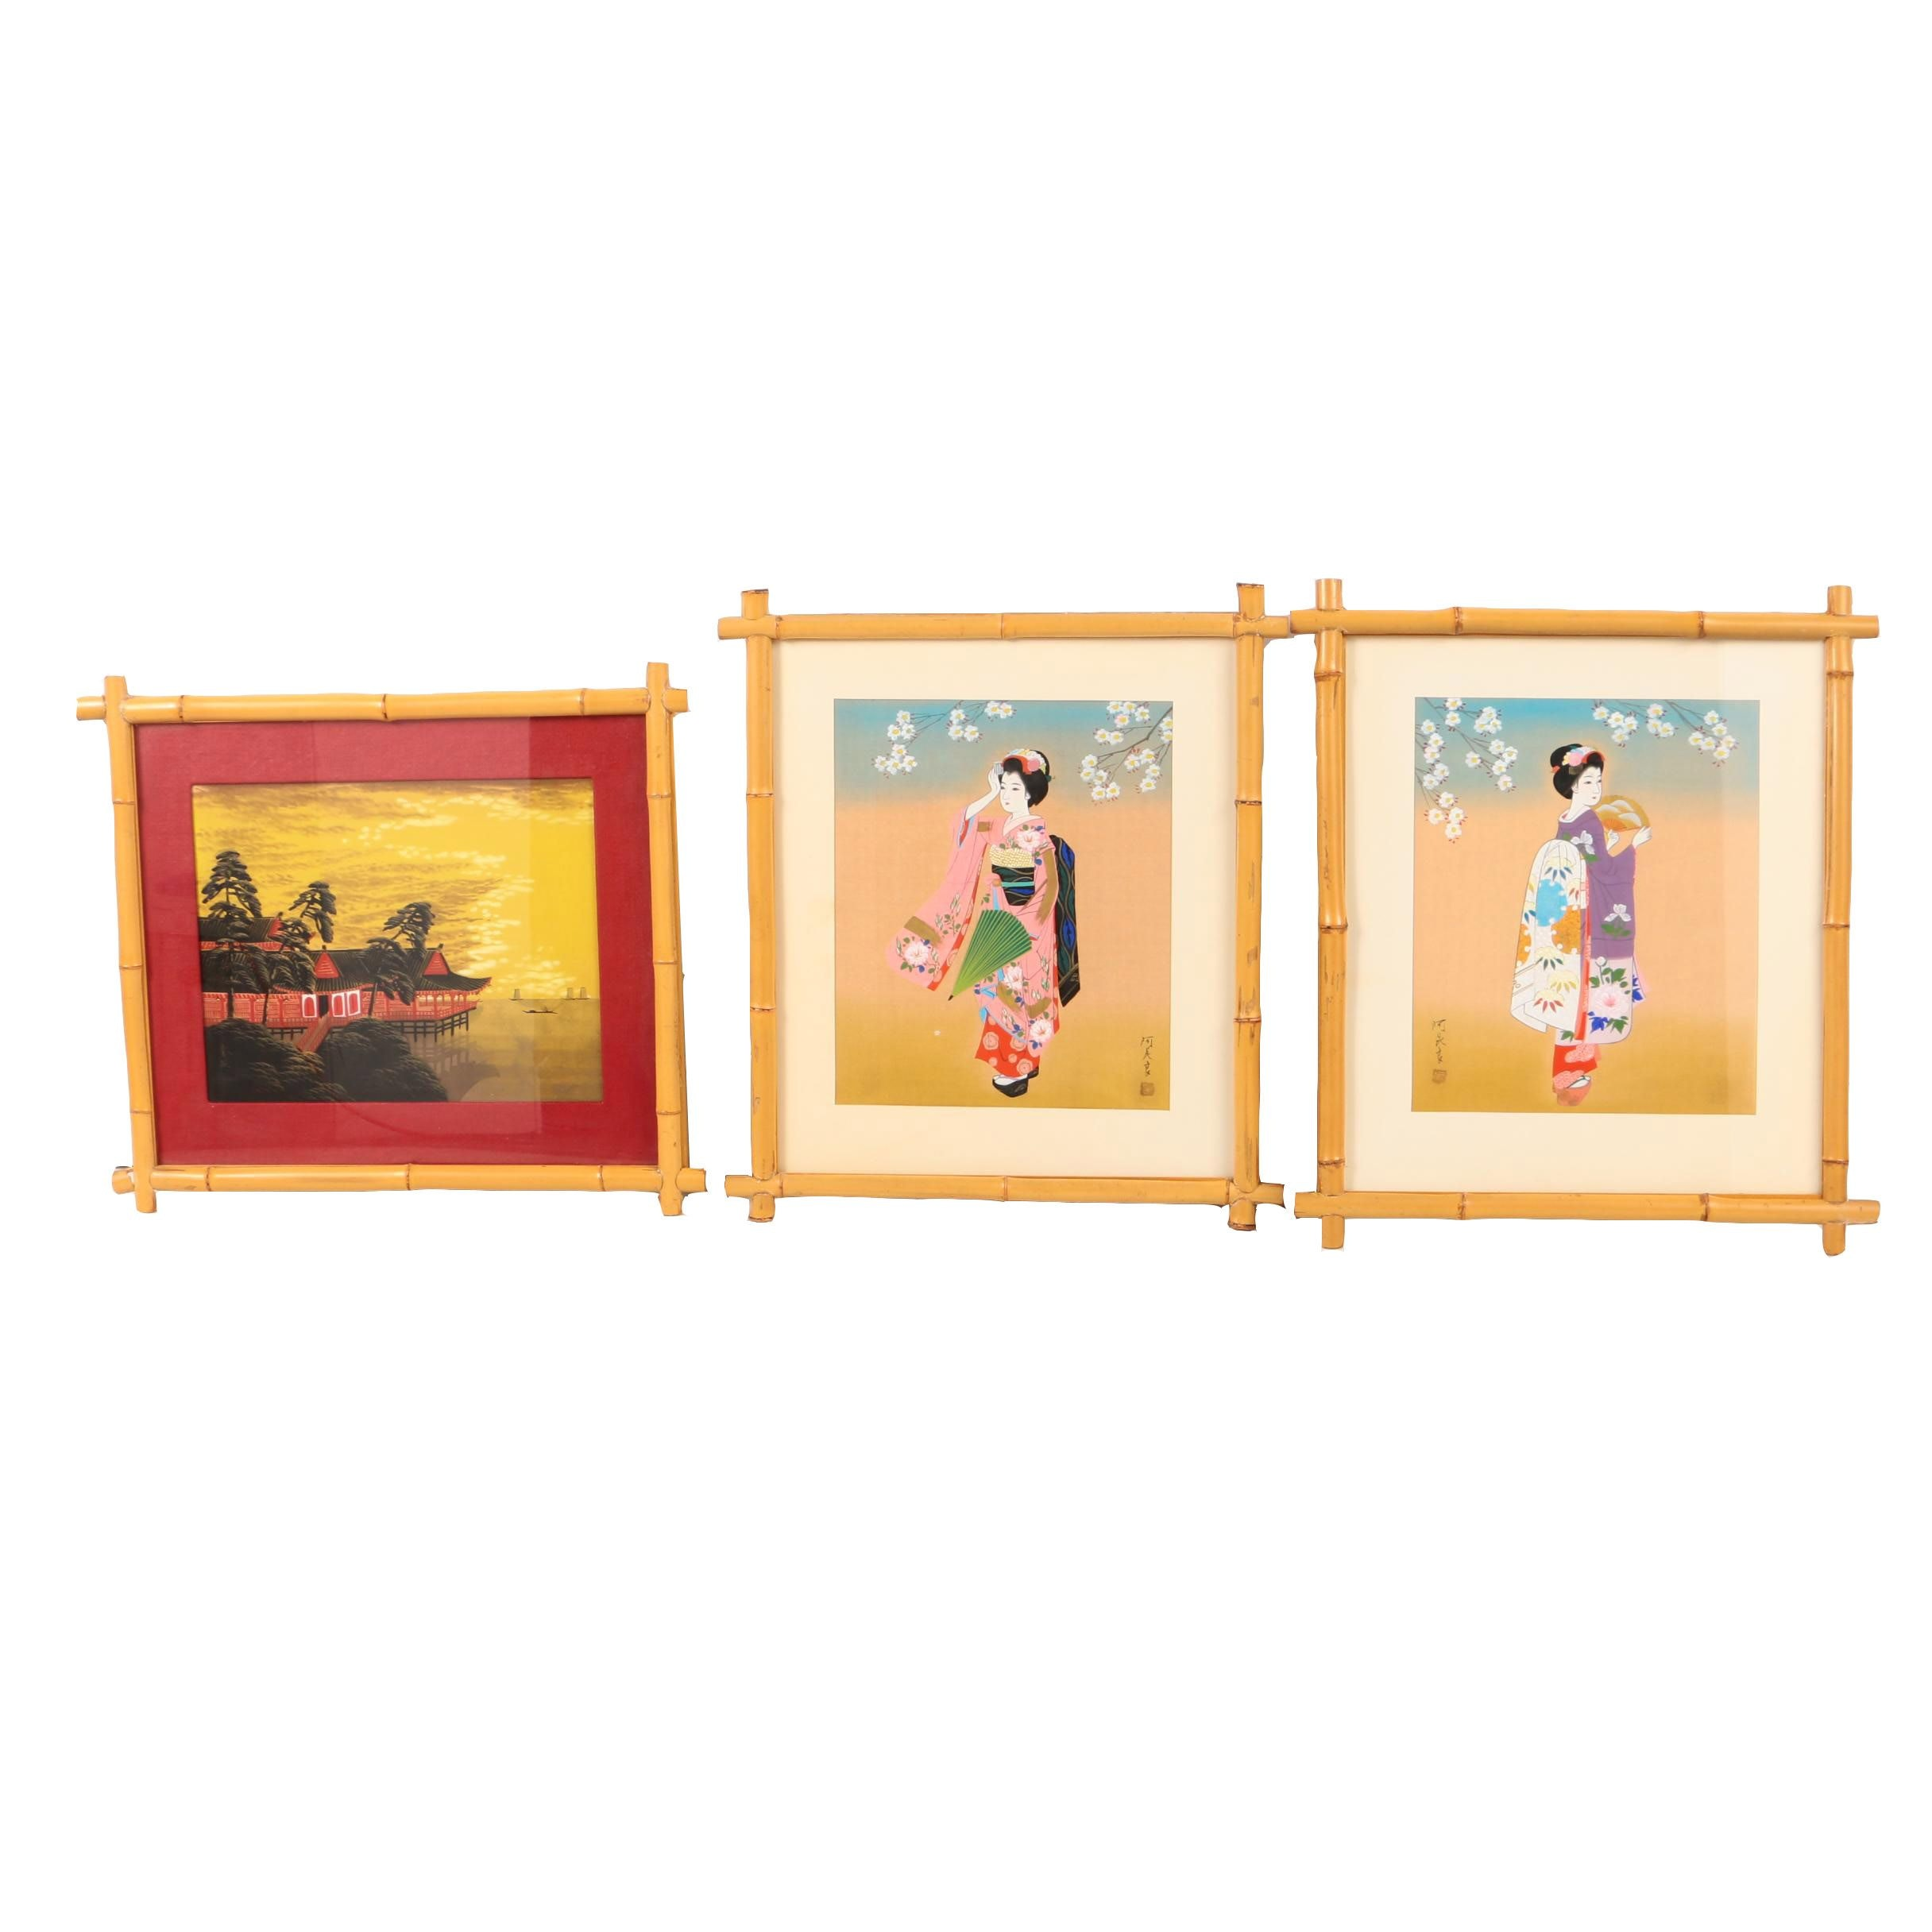 Collection of East Asian Gouache and Ink Paintings on Linen